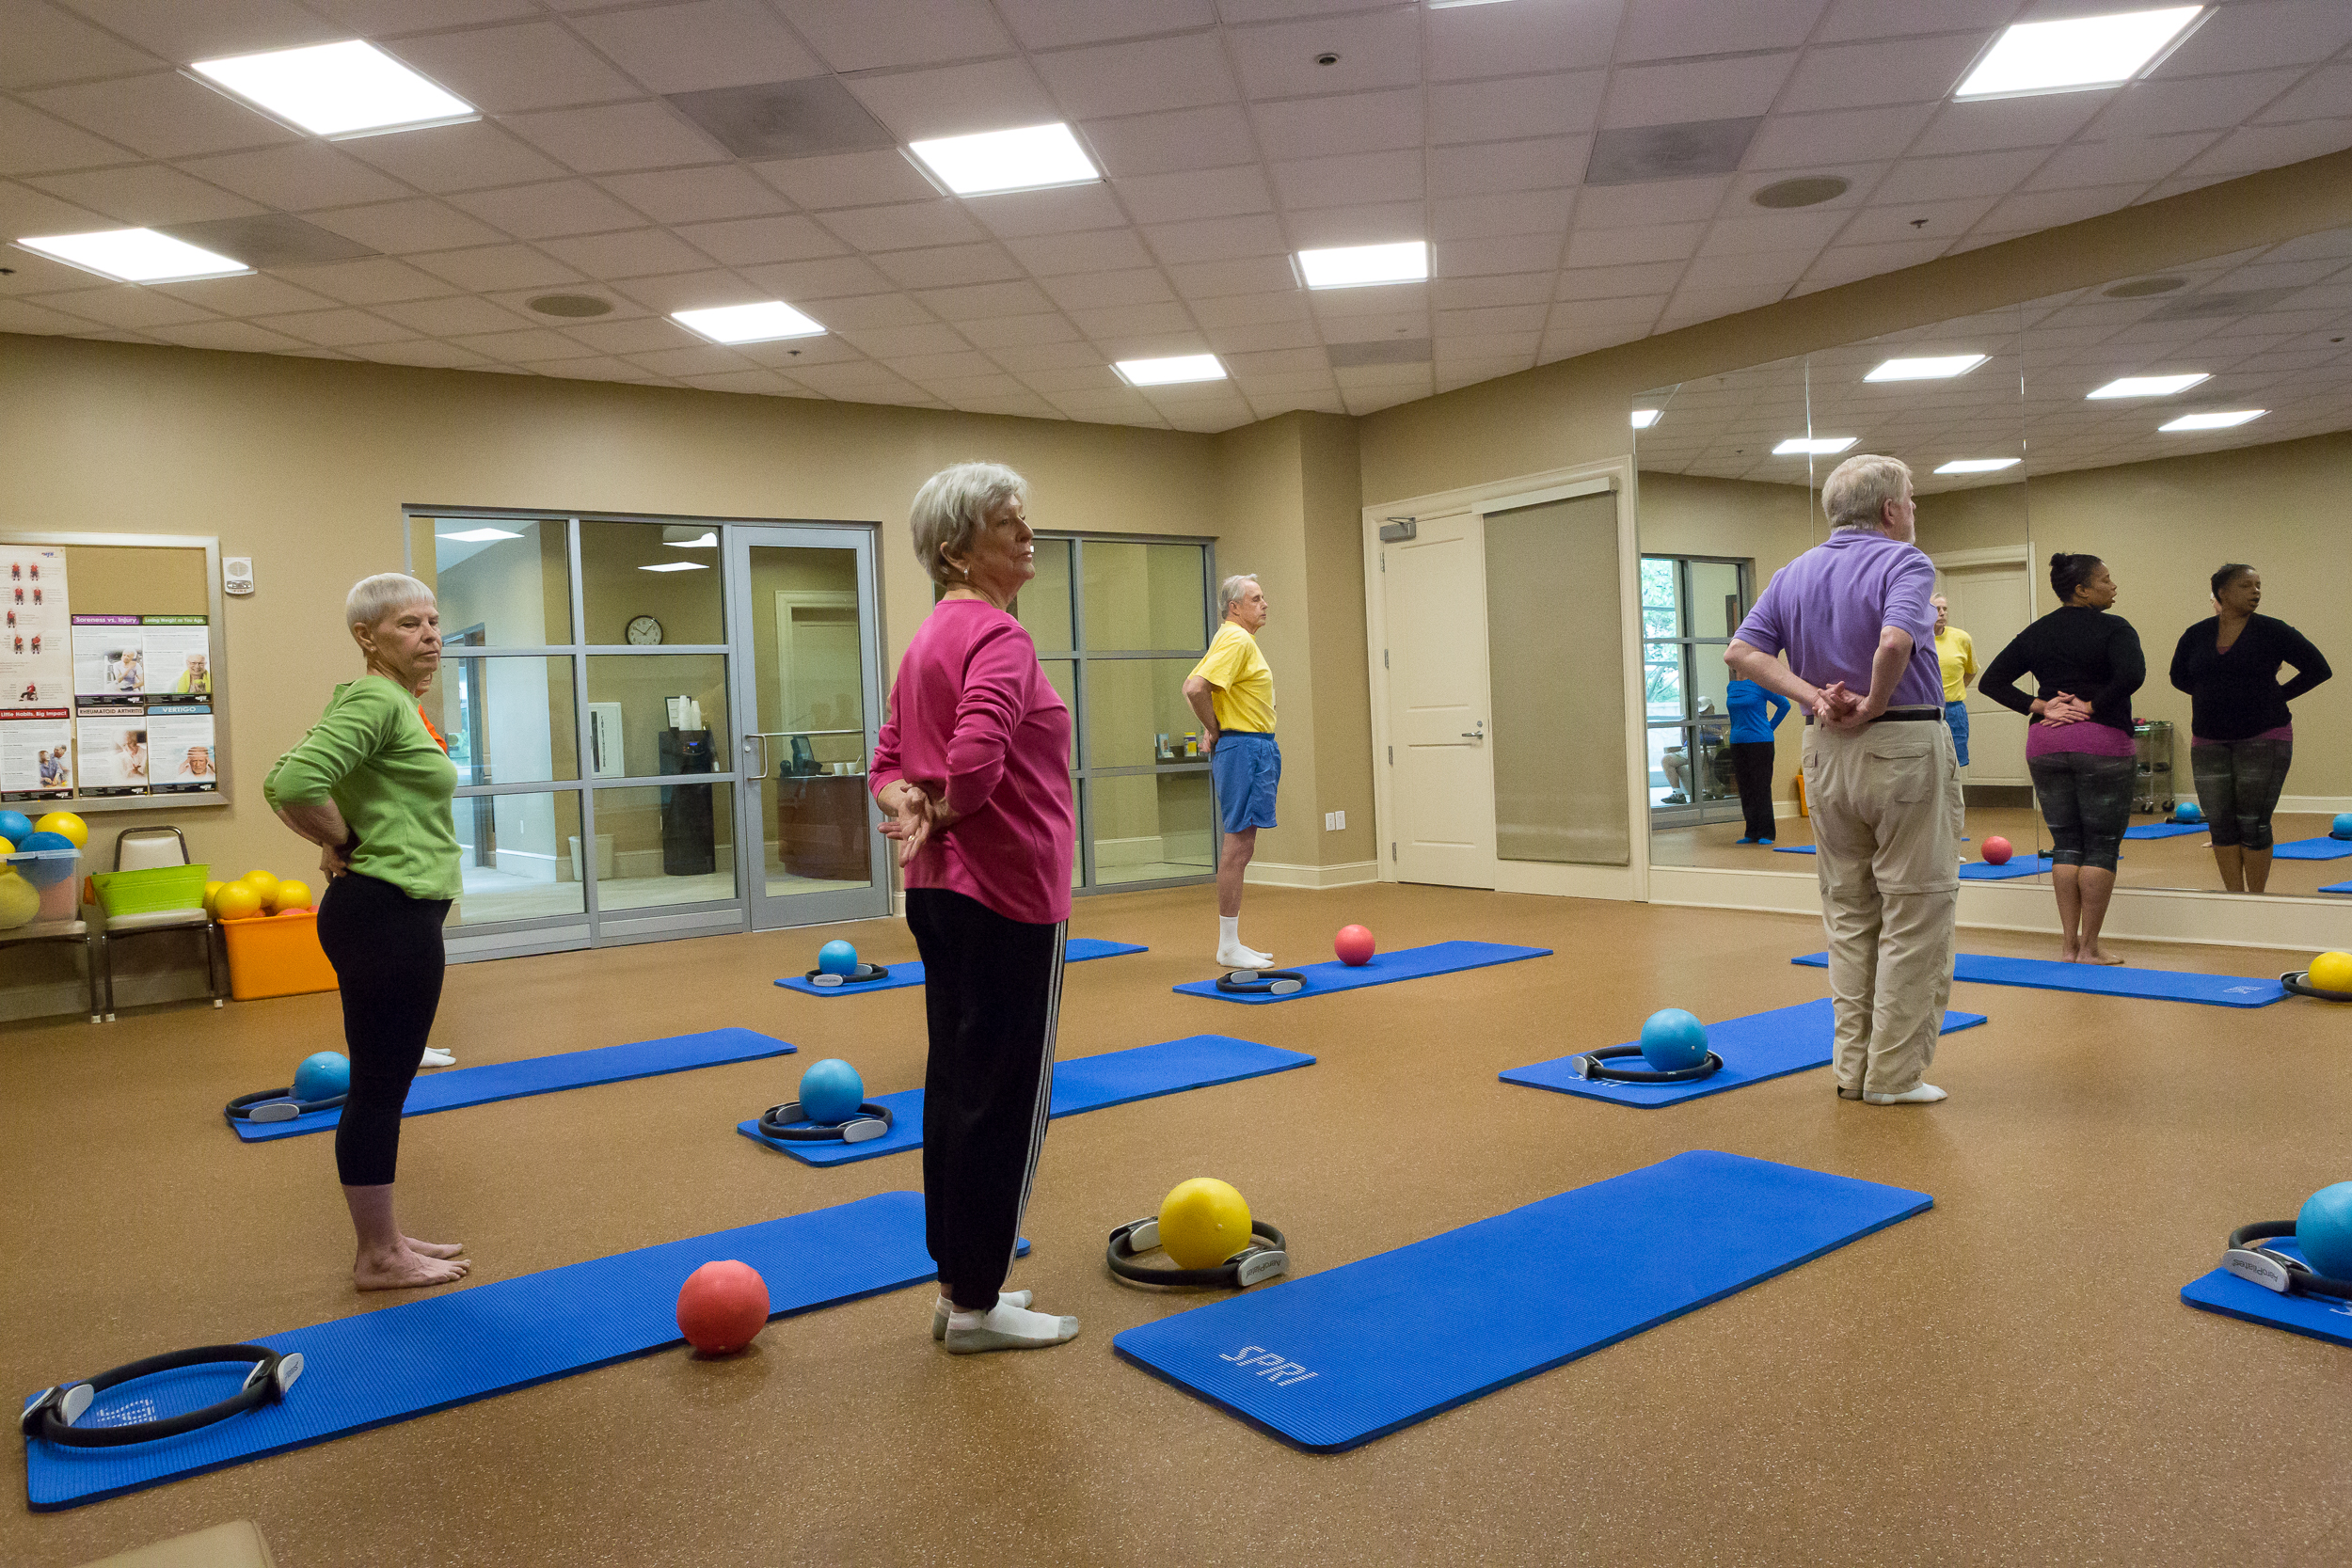 Image for Tips for Starting an Exercise Program at an Older Age